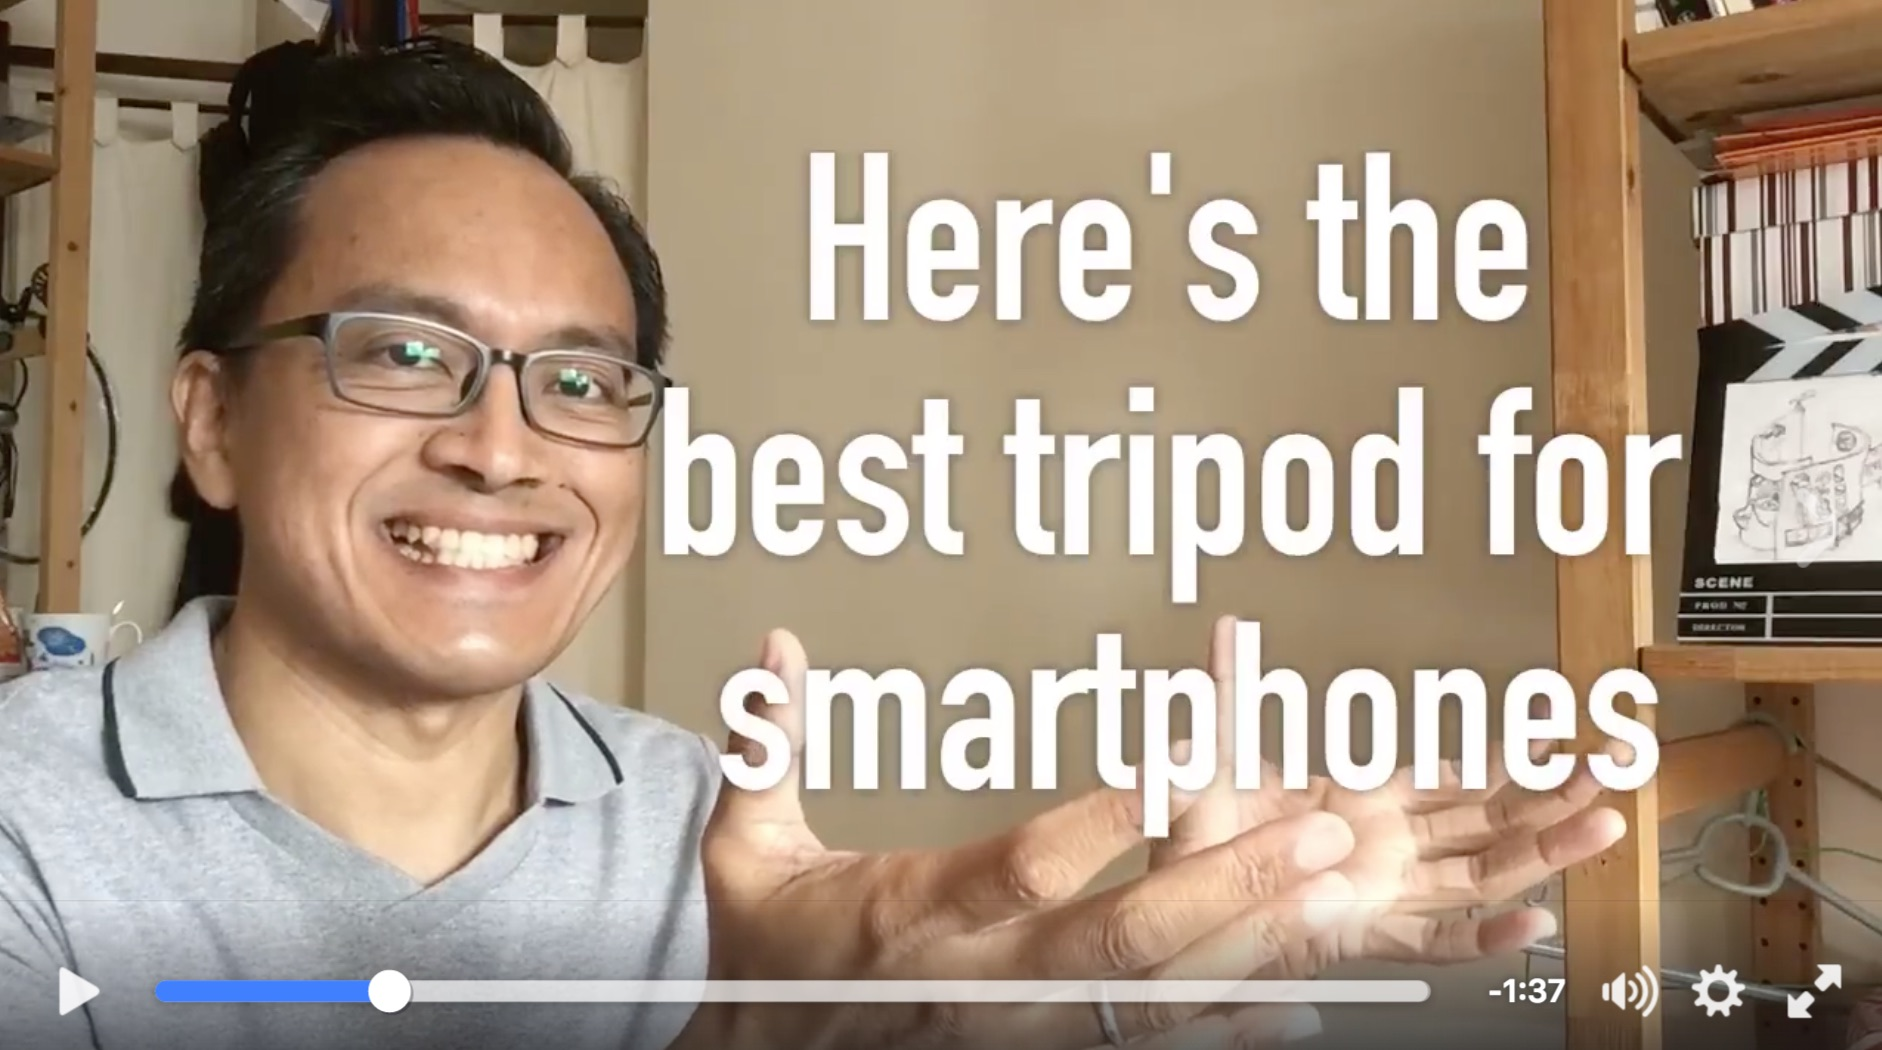 Here's the best tripod for smartphone video makers